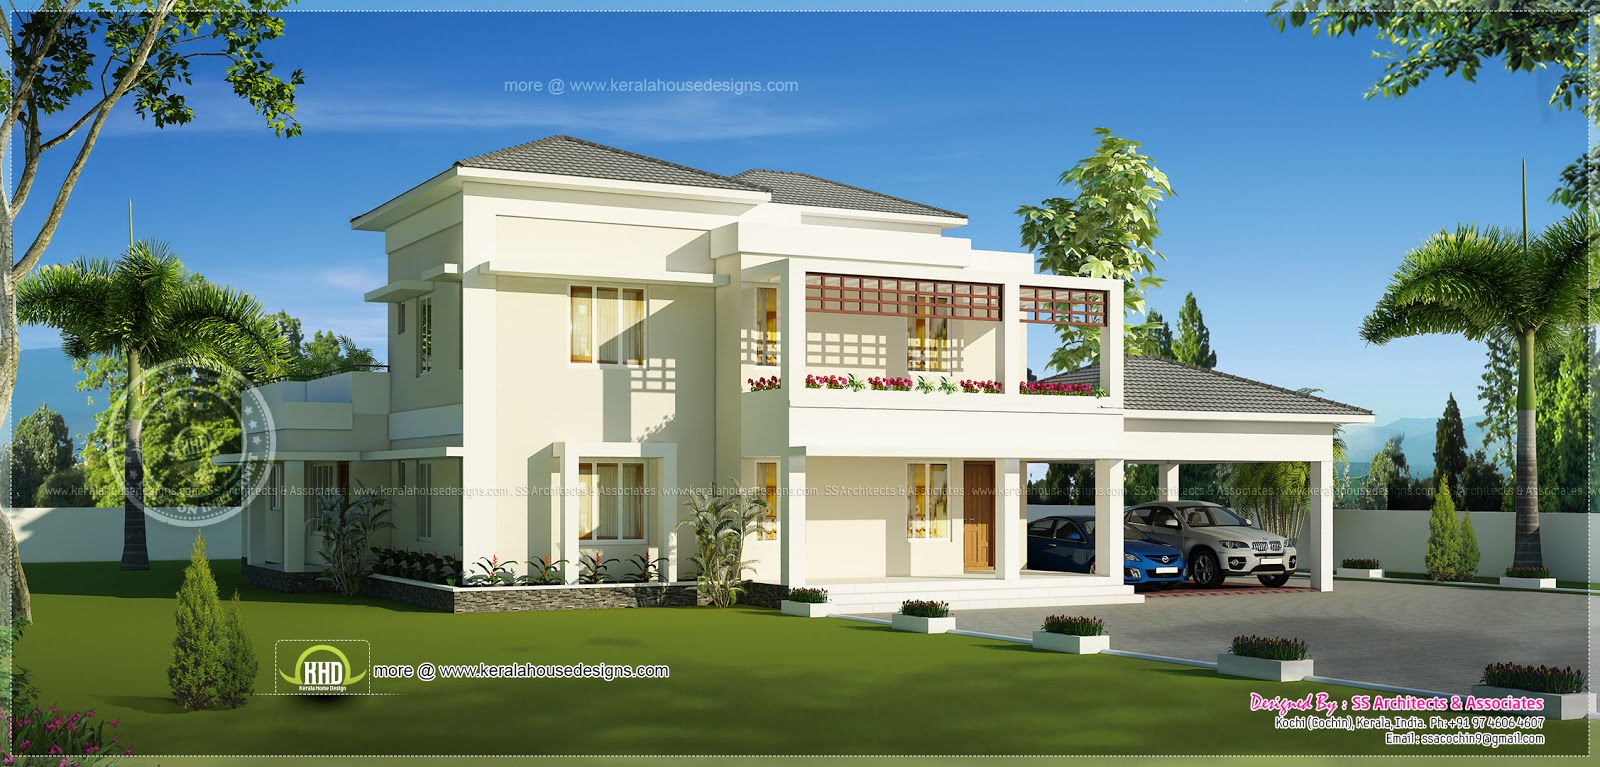 Beautiful double storey modern villa exterior kerala for Kerala home designs photos in double floor